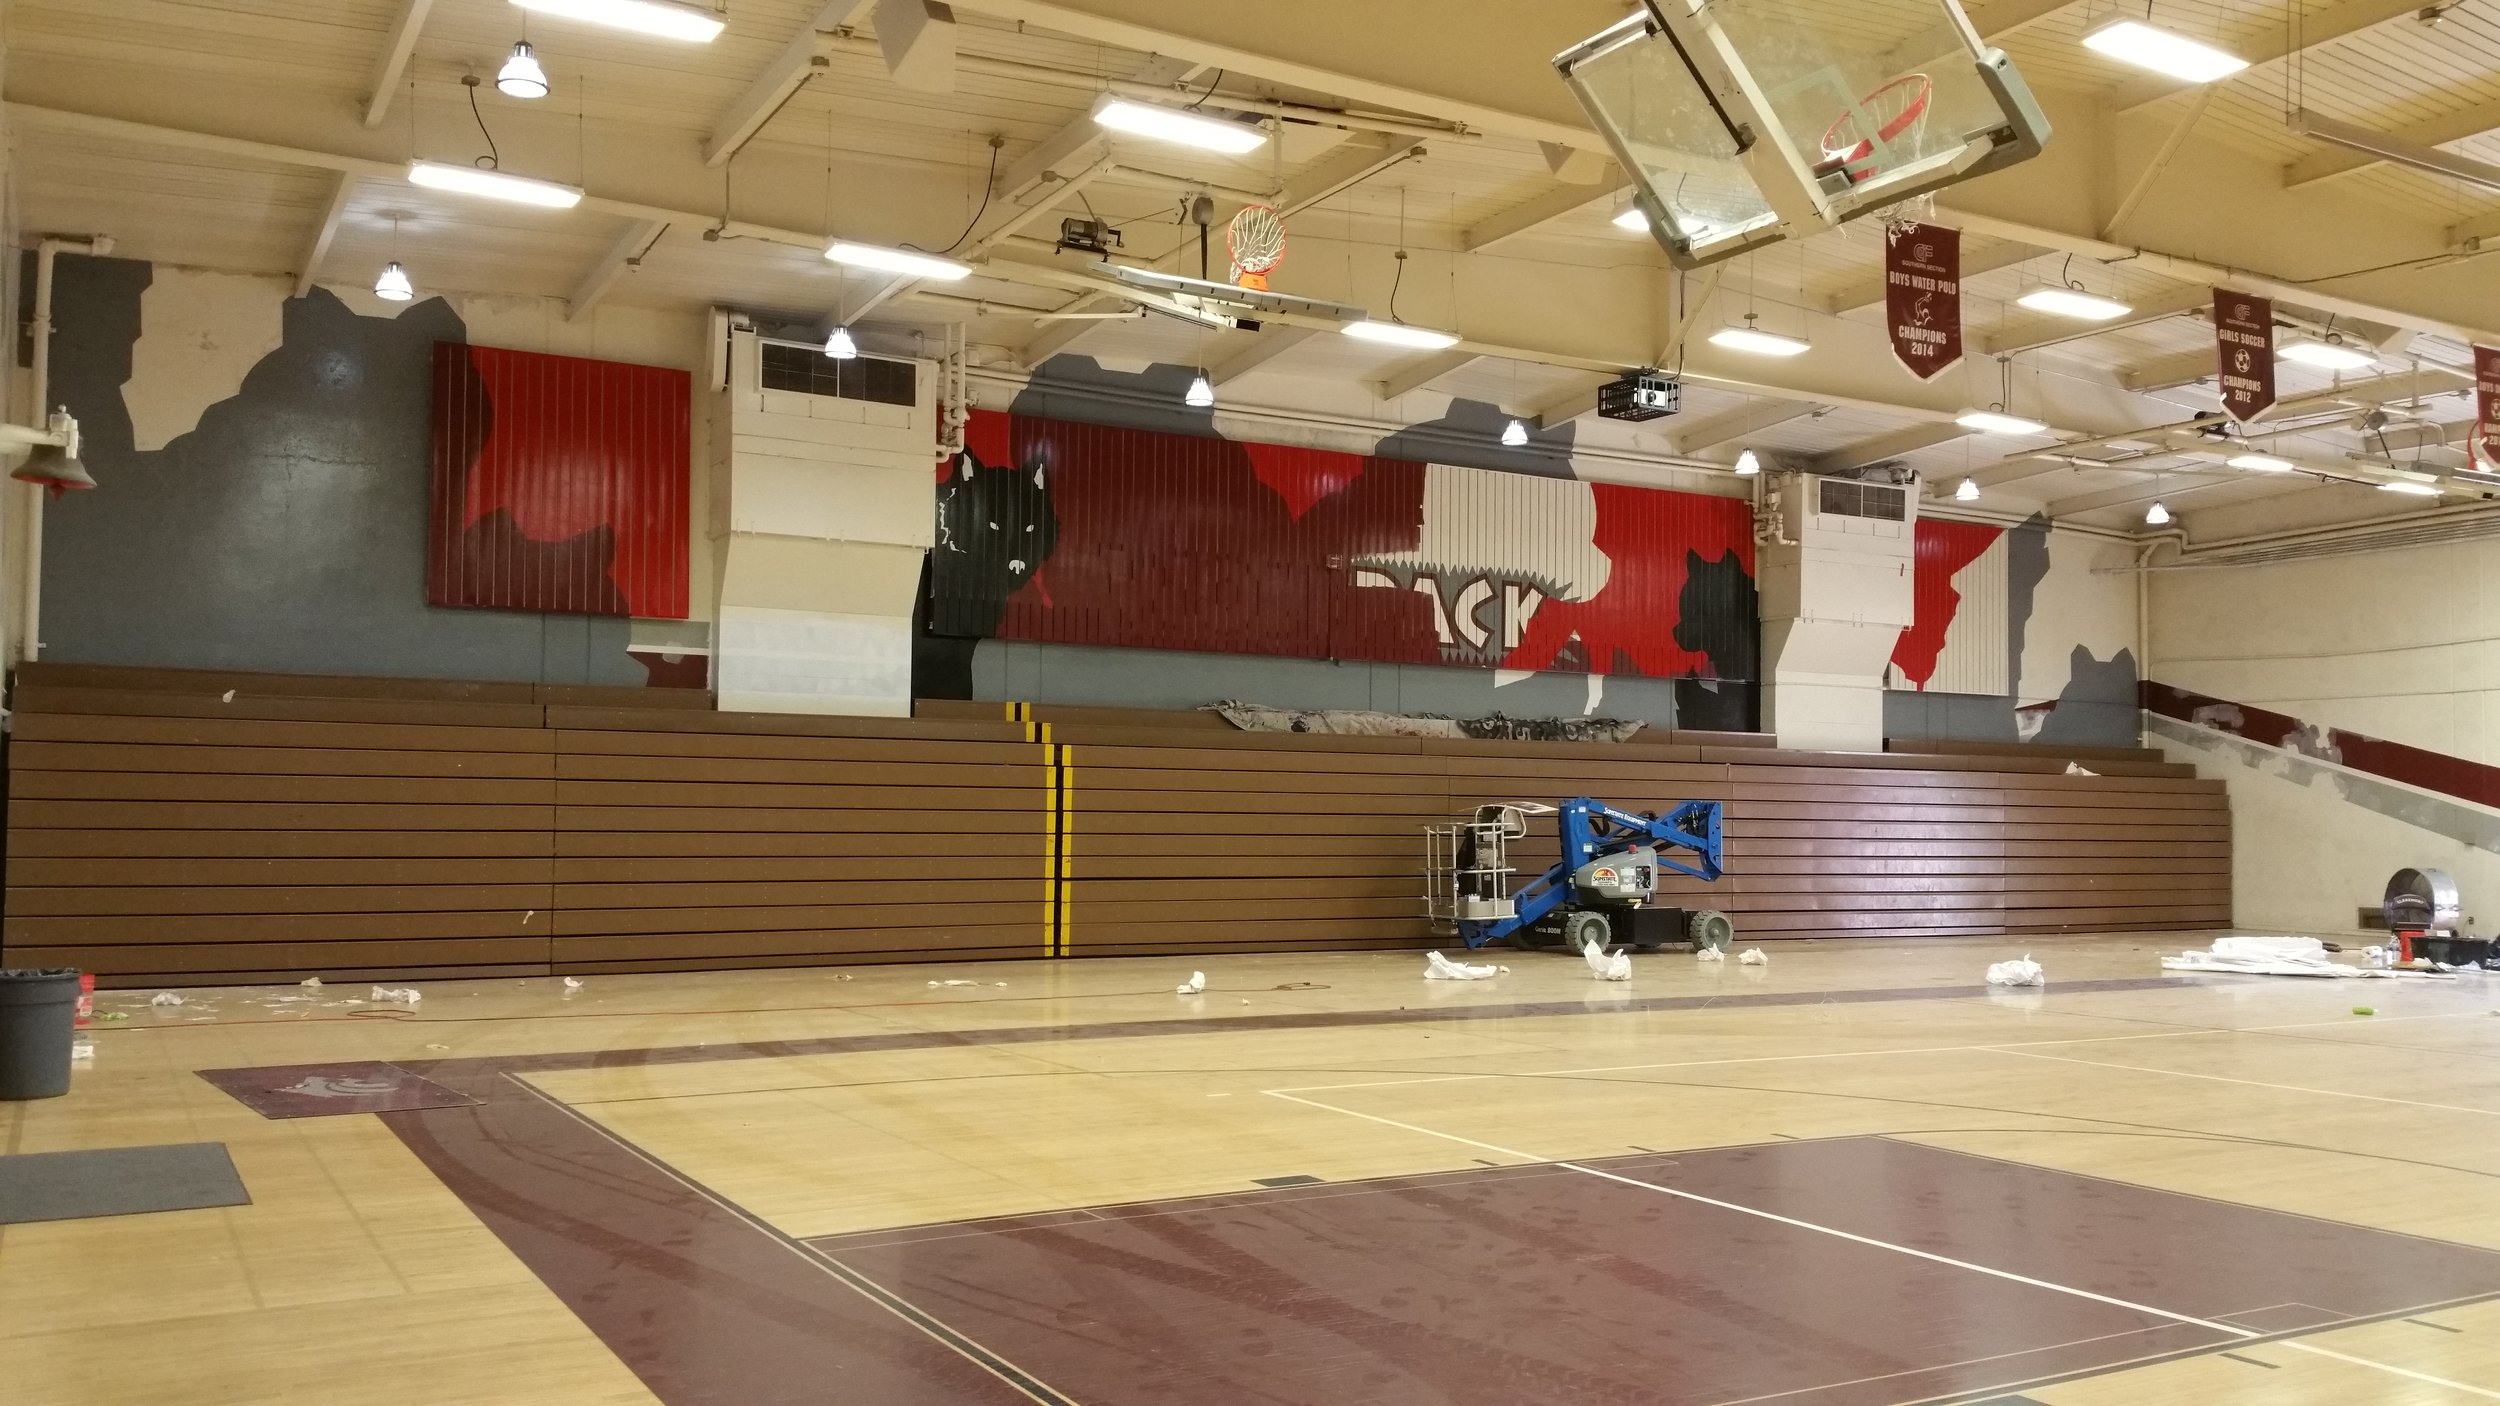 CLAREMONT HS - SIDE PROGRESS